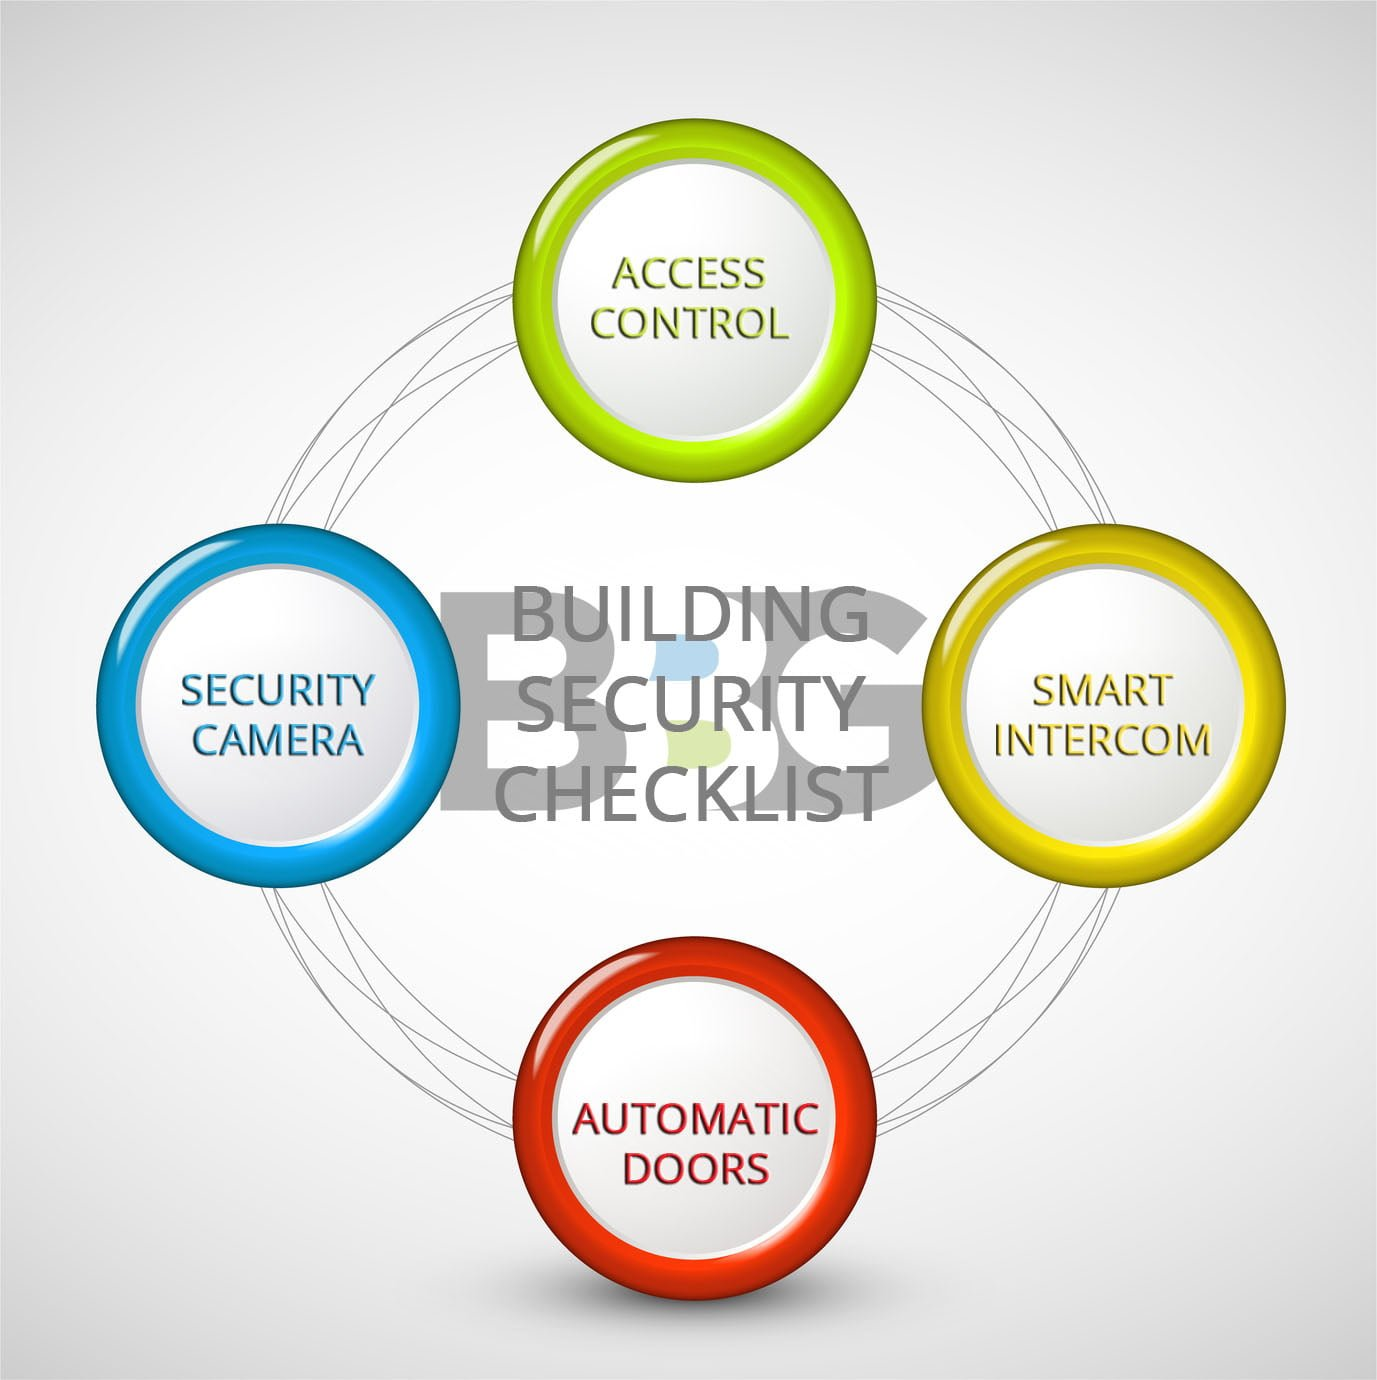 Building Security Checklist for Property Management